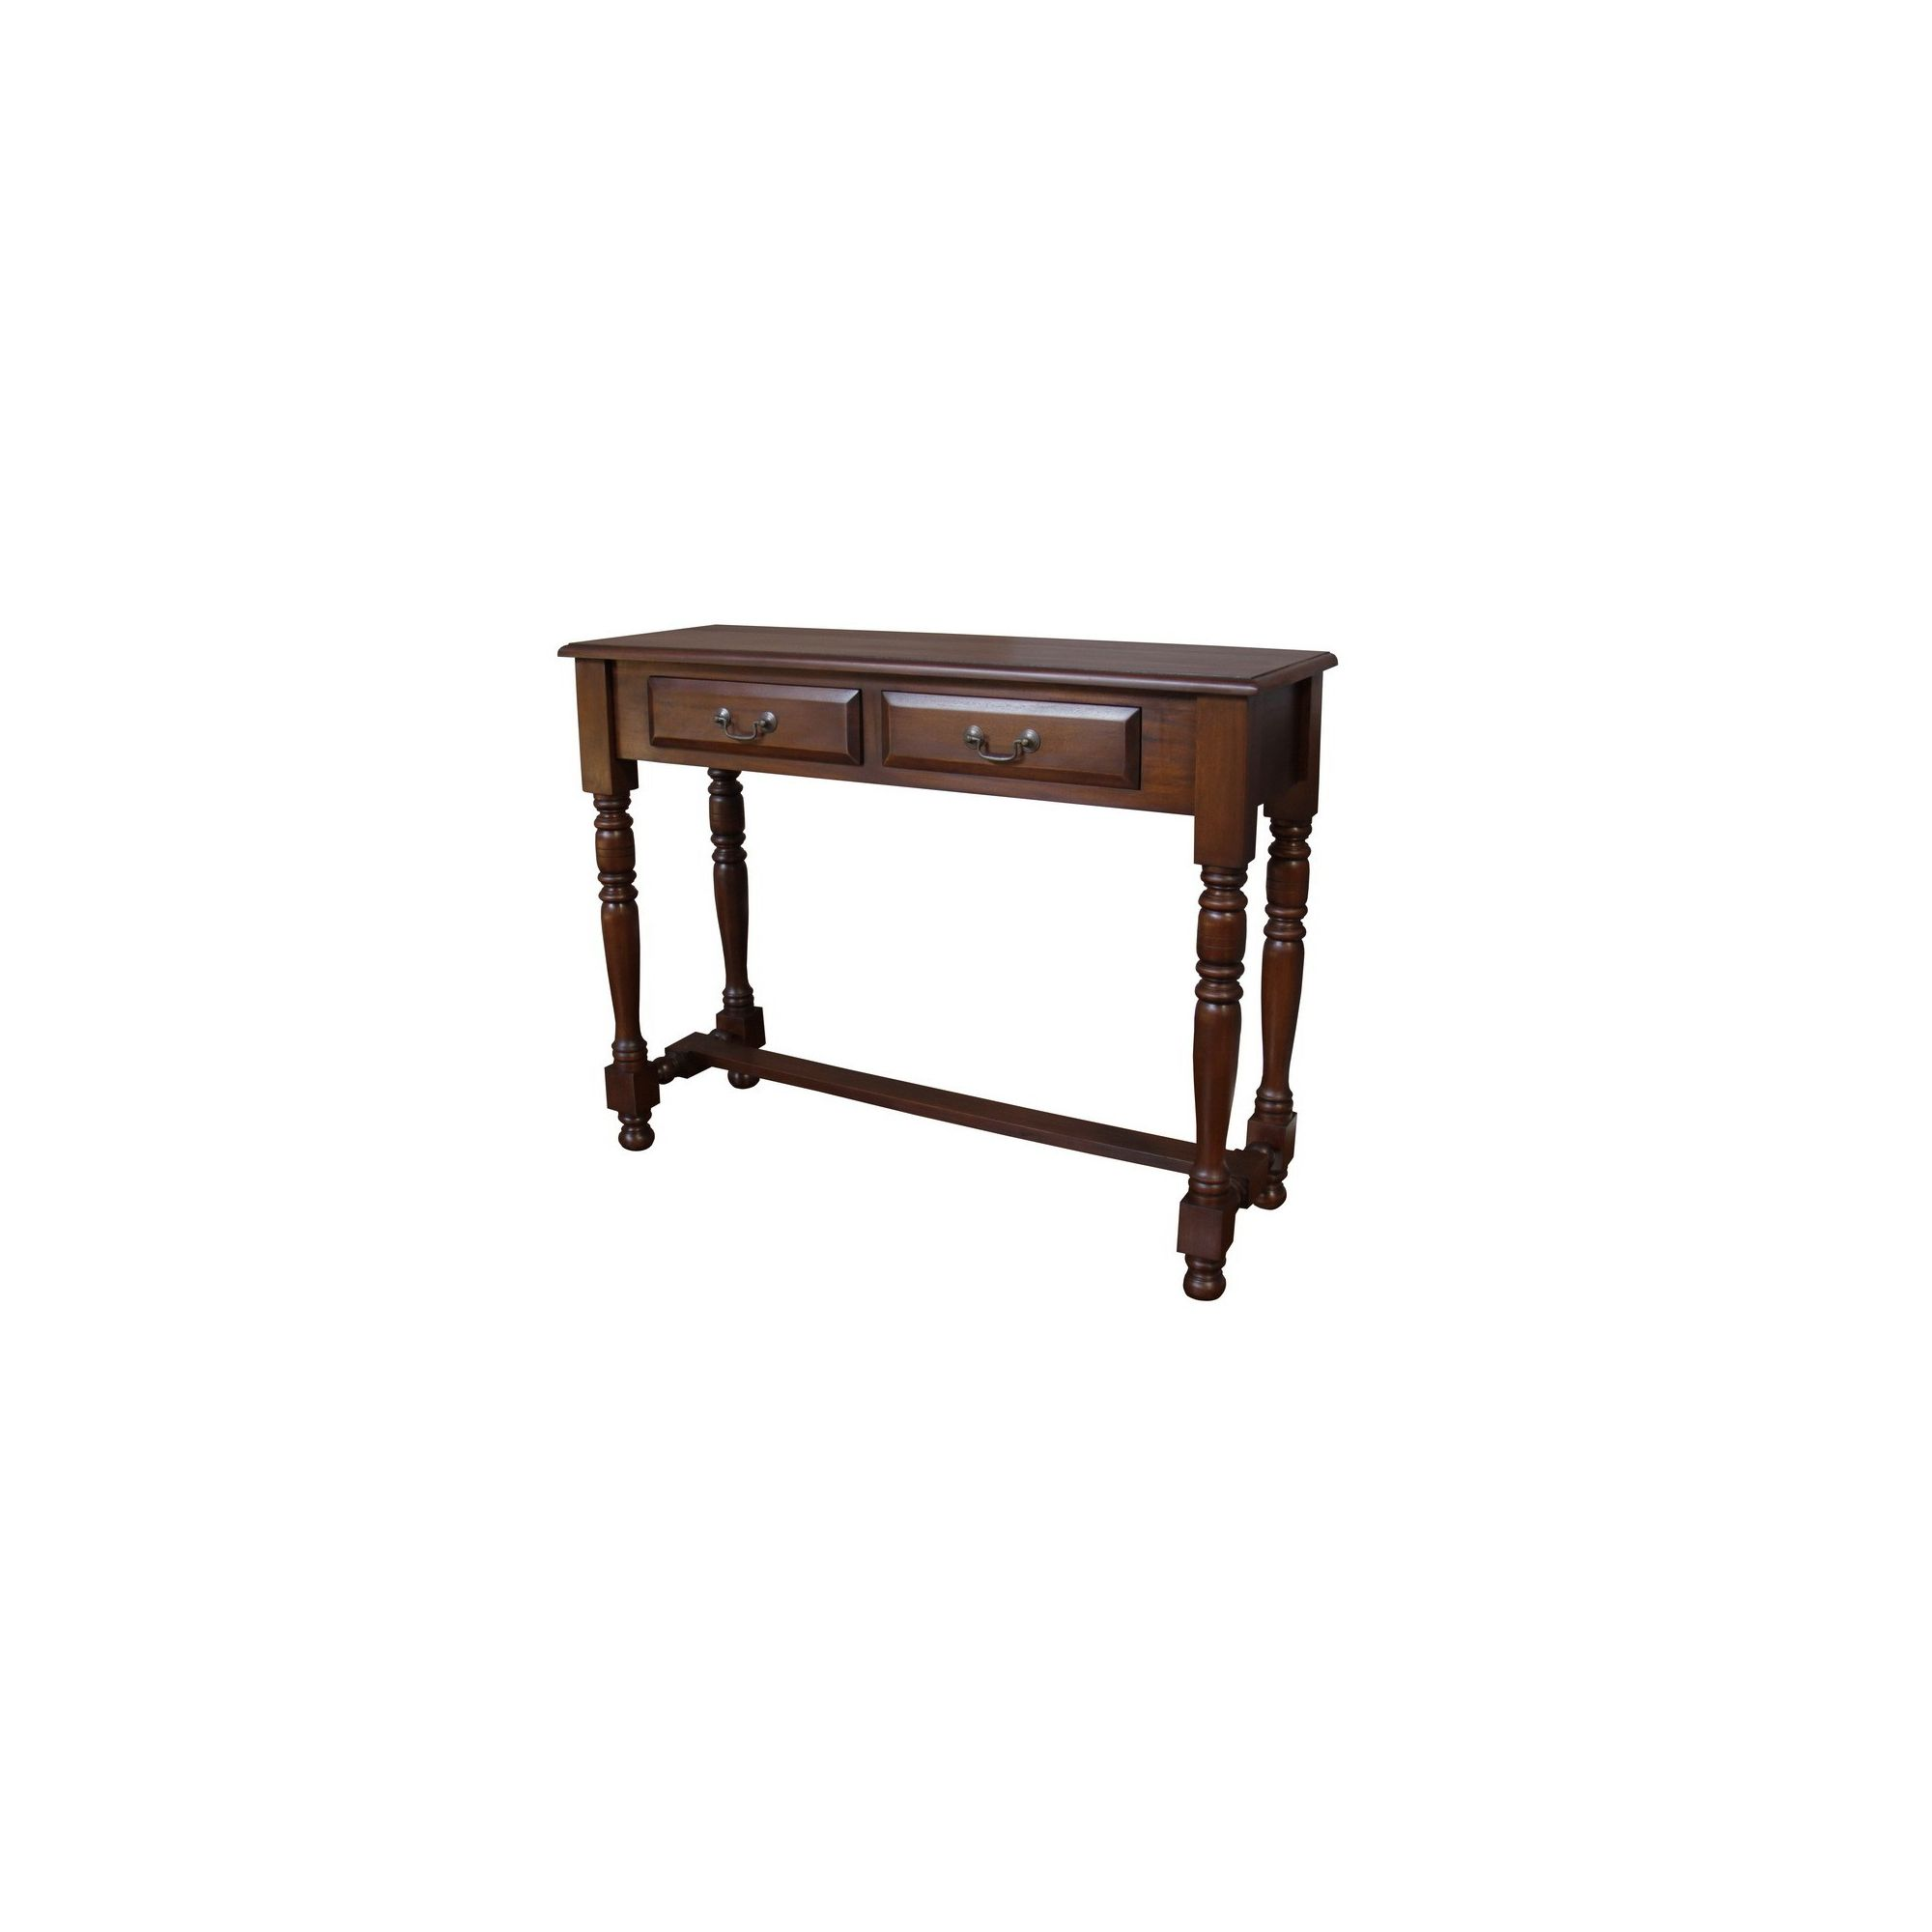 Lock stock and barrel Mahogany 2 Drawer Hall Table with Wooden Knob Handles in Mahogany at Tesco Direct